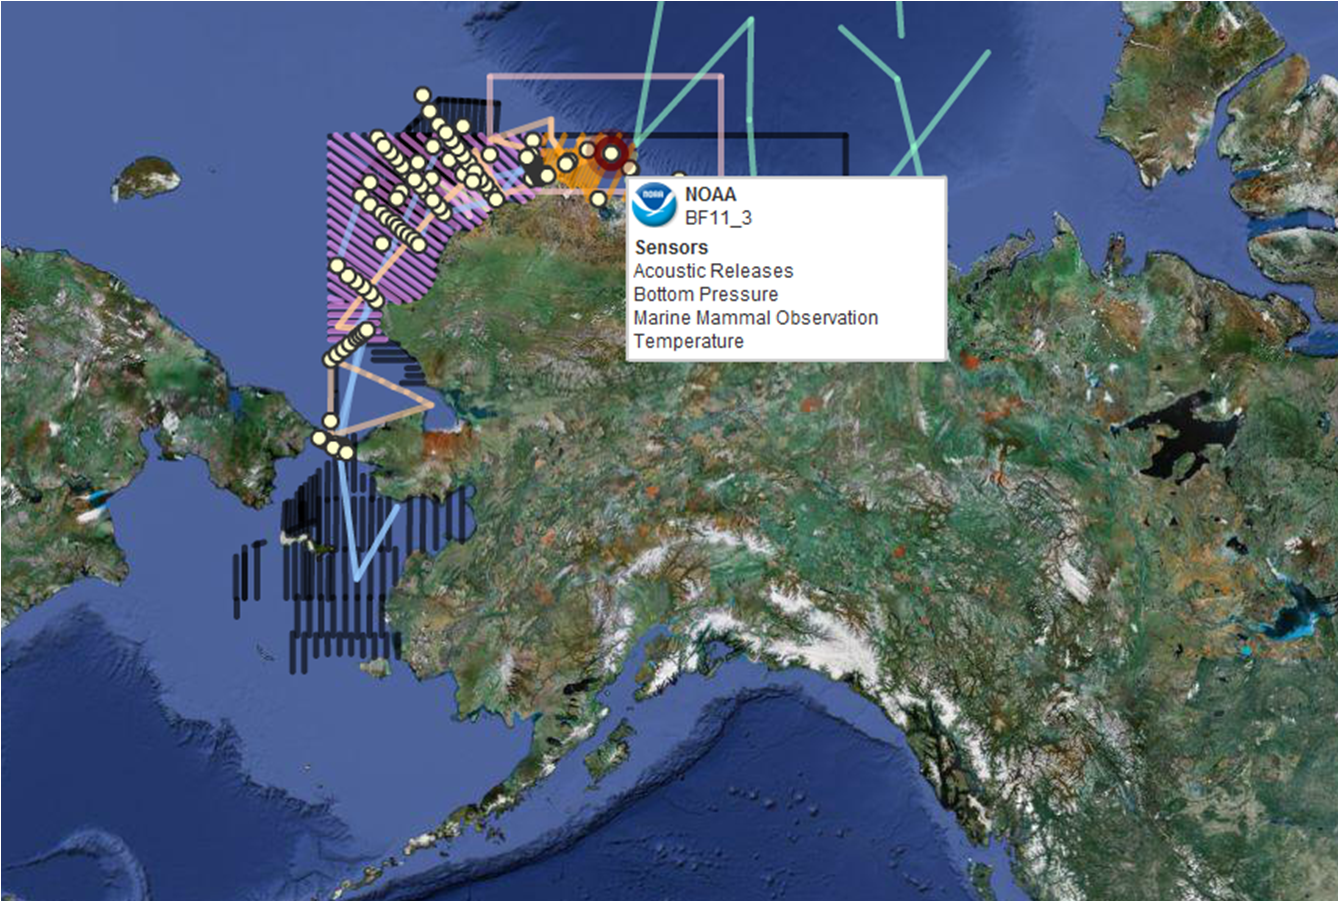 This screen shot of the Arctic Research Assets map shows station locations and monitoring transects. By scrolling over the map, the viewer can learn more about the specifics of each instrument or transect.